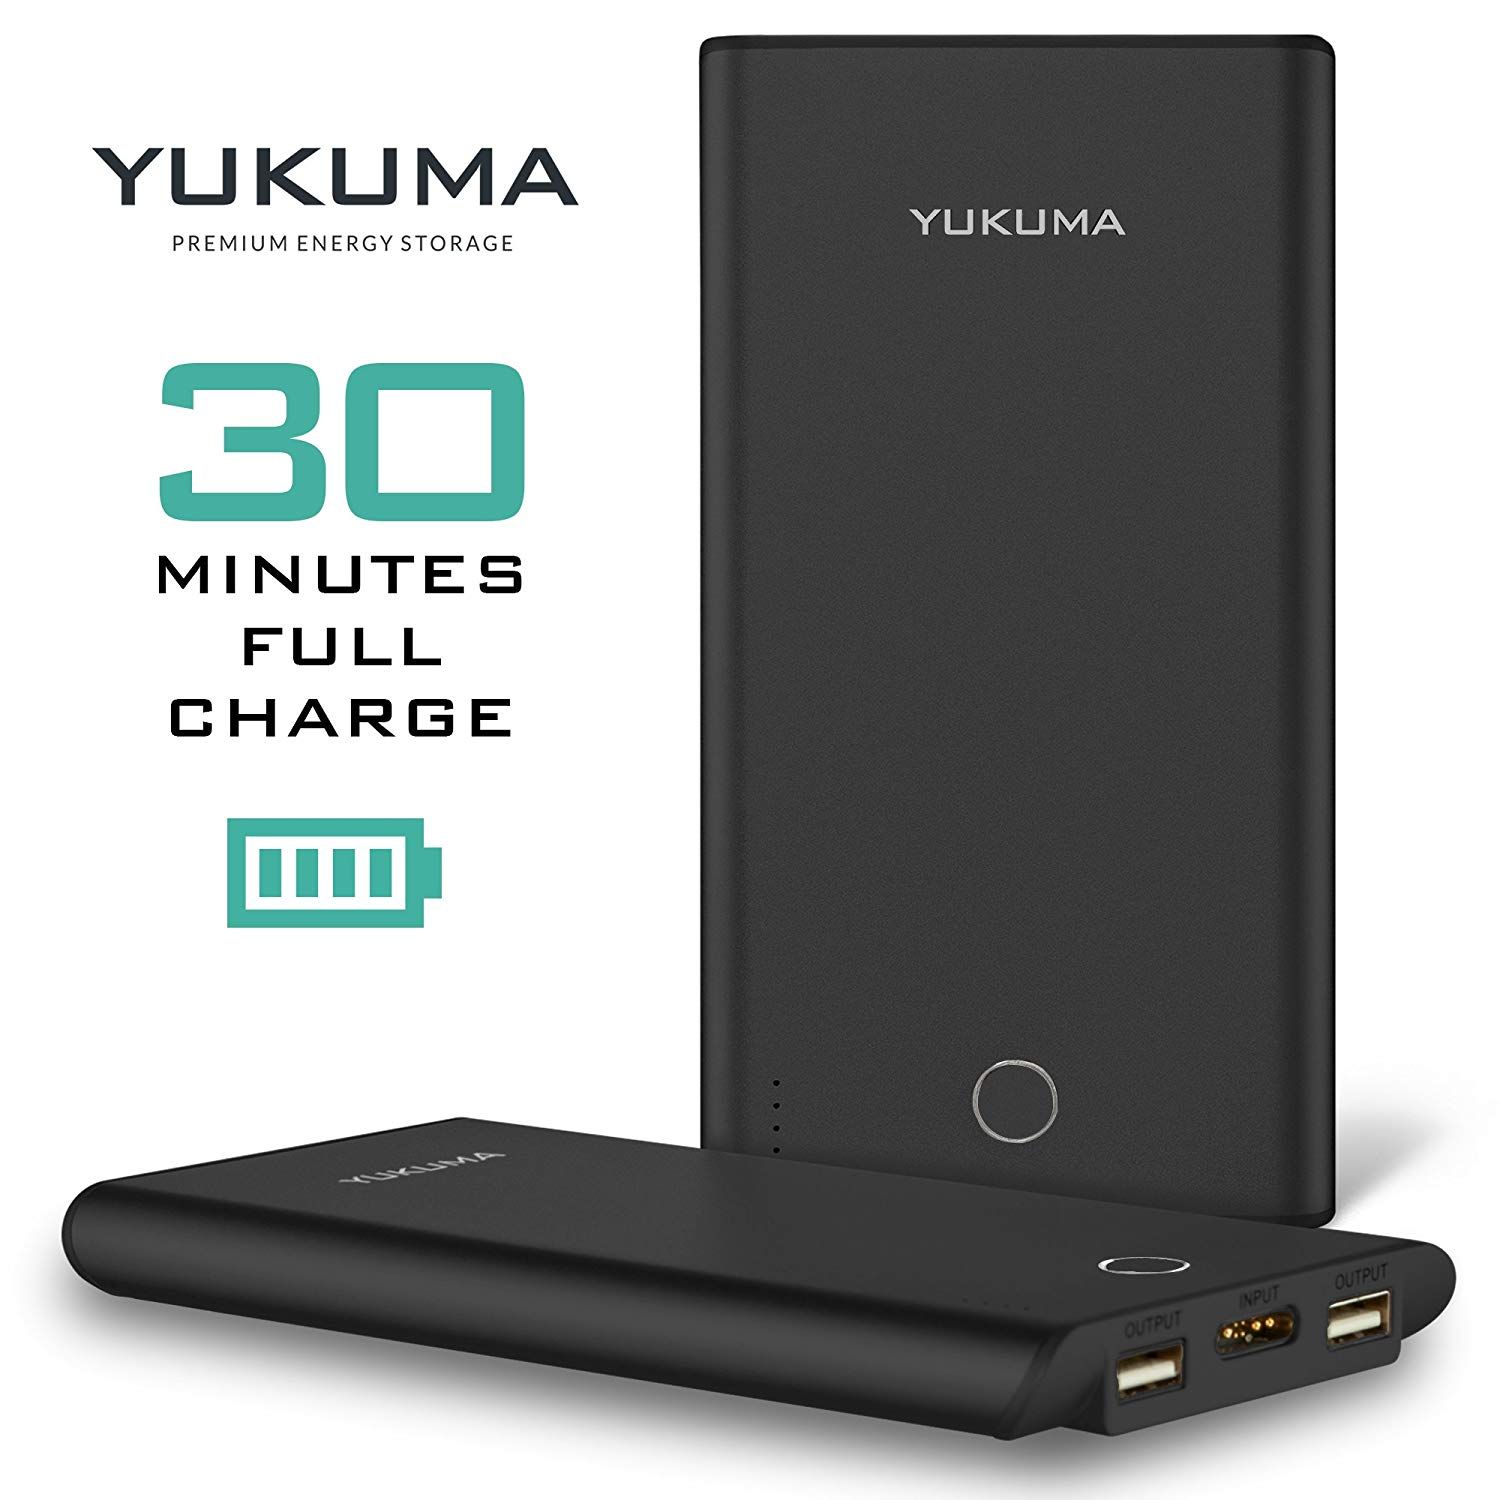 Yukuma Power Bank - Patented Technology Full Recharge in 30 Minutes - 10000 mAH - Portable Charger External Batteries For Phones, Tablets, Cameras [German Engineered] (FCC, CE Certified)